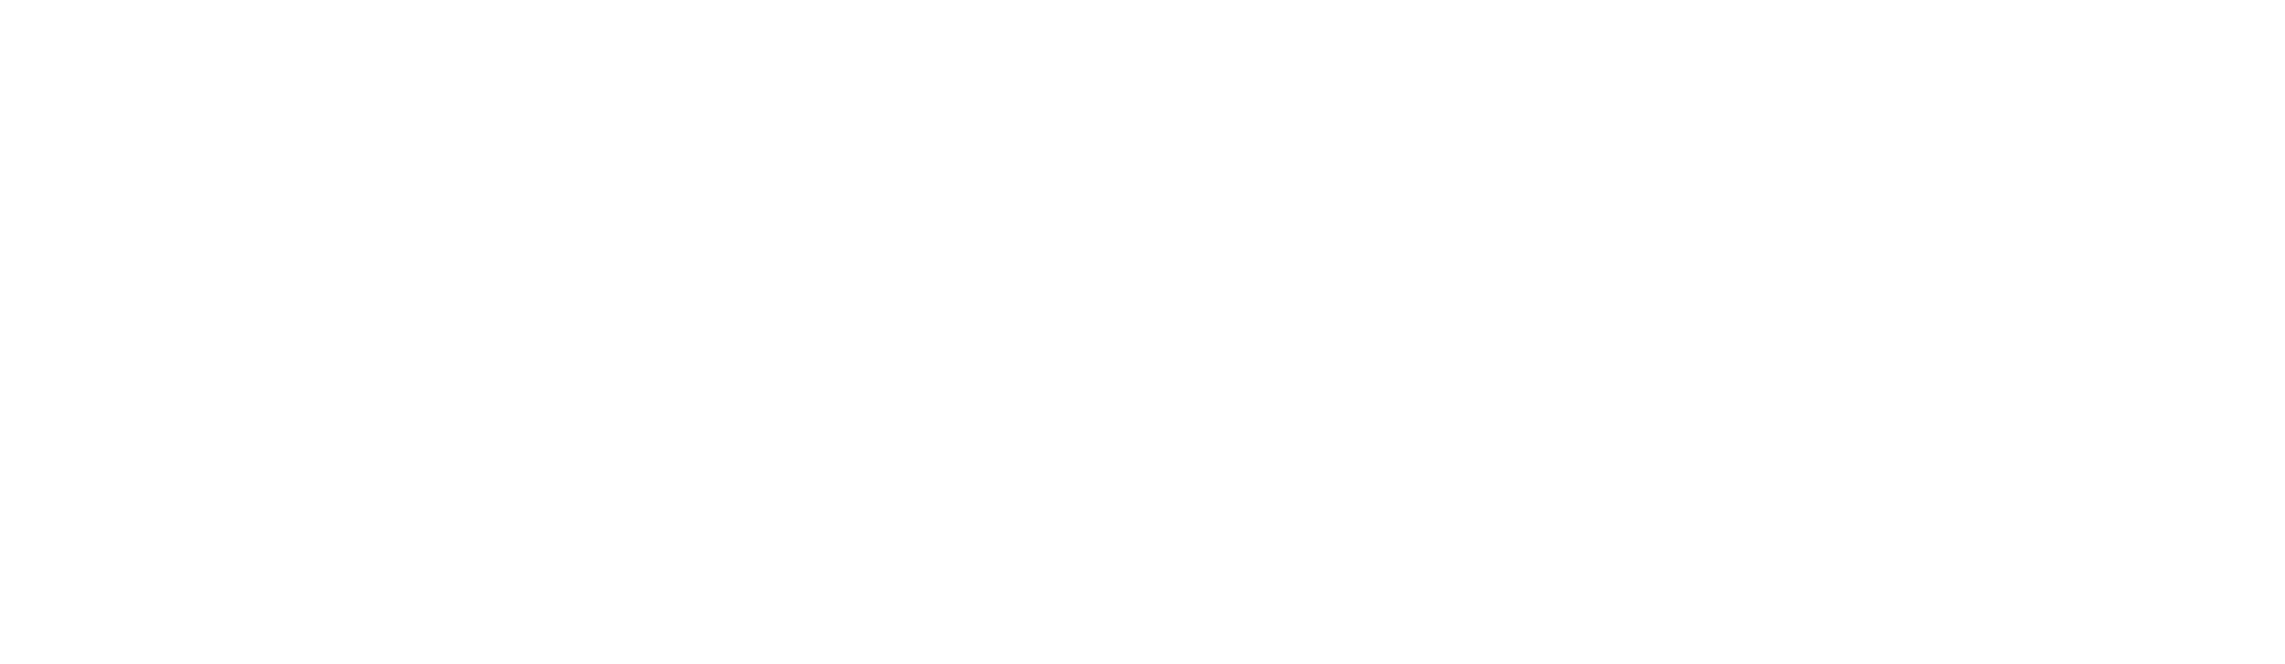 Verdir at Hermann Park Logo